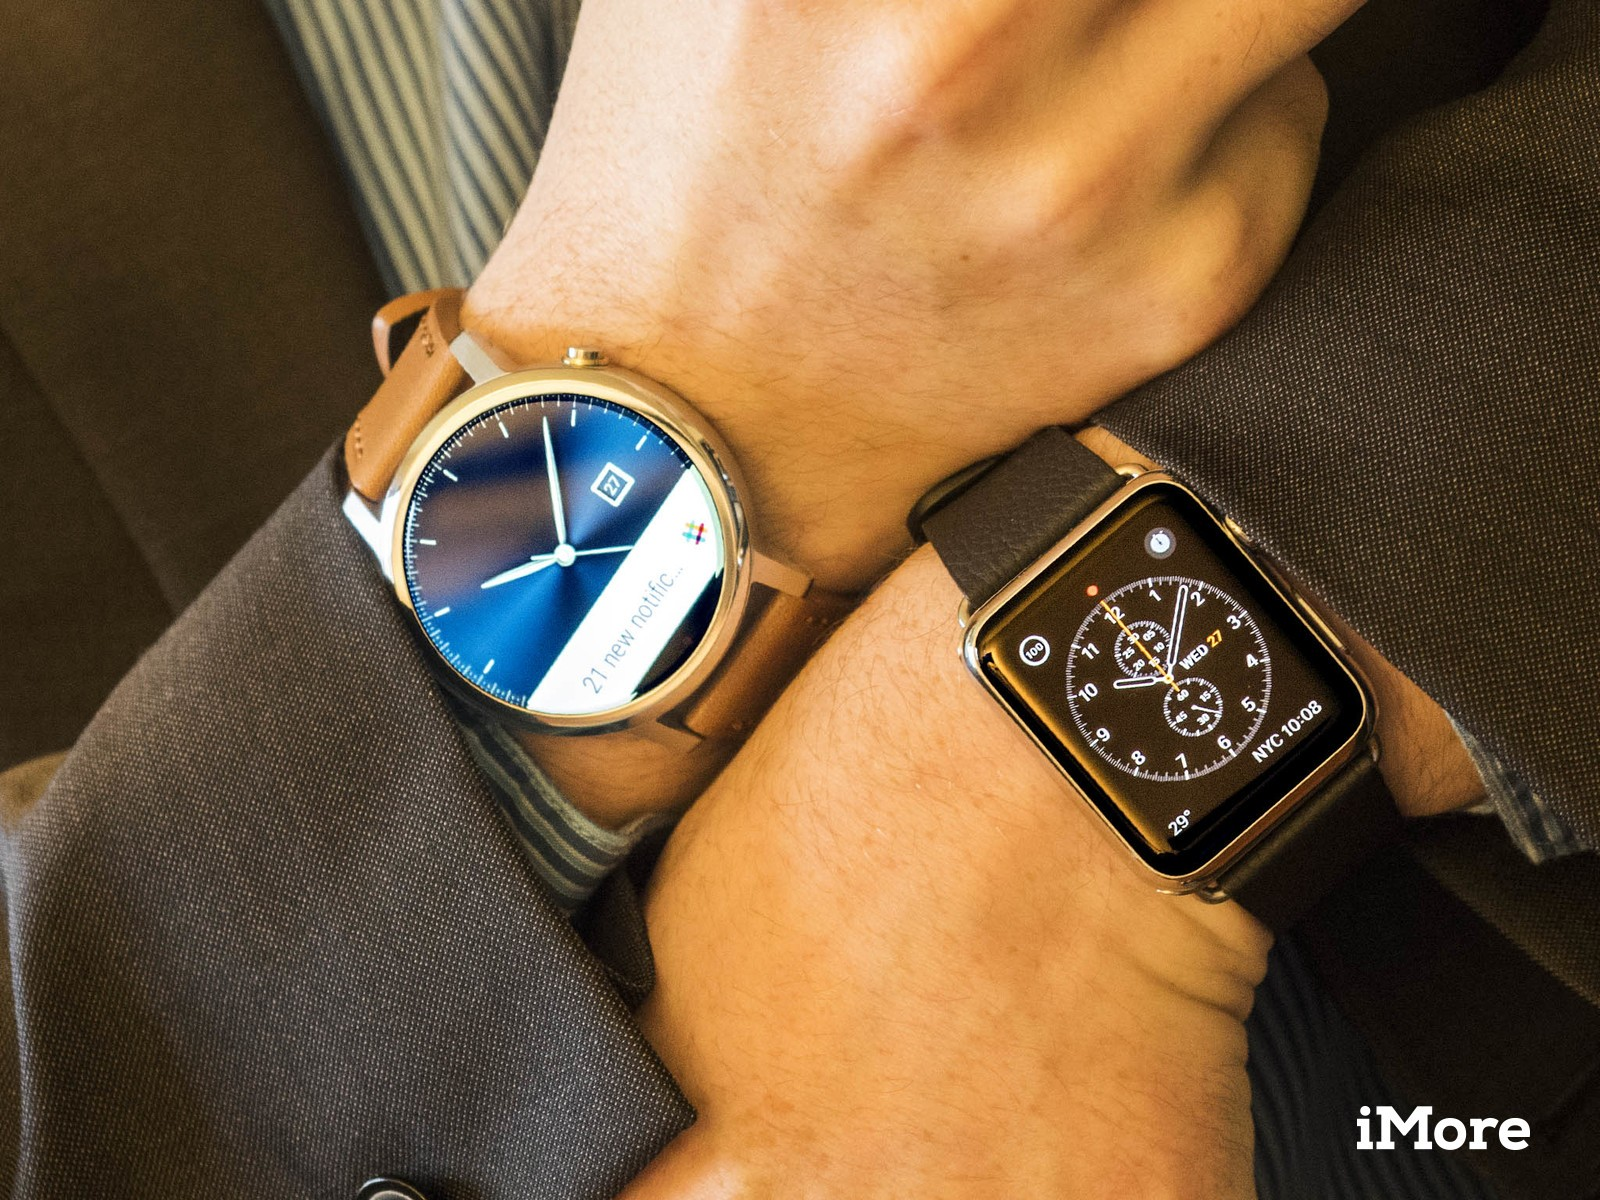 Android Wear and Apple Watch